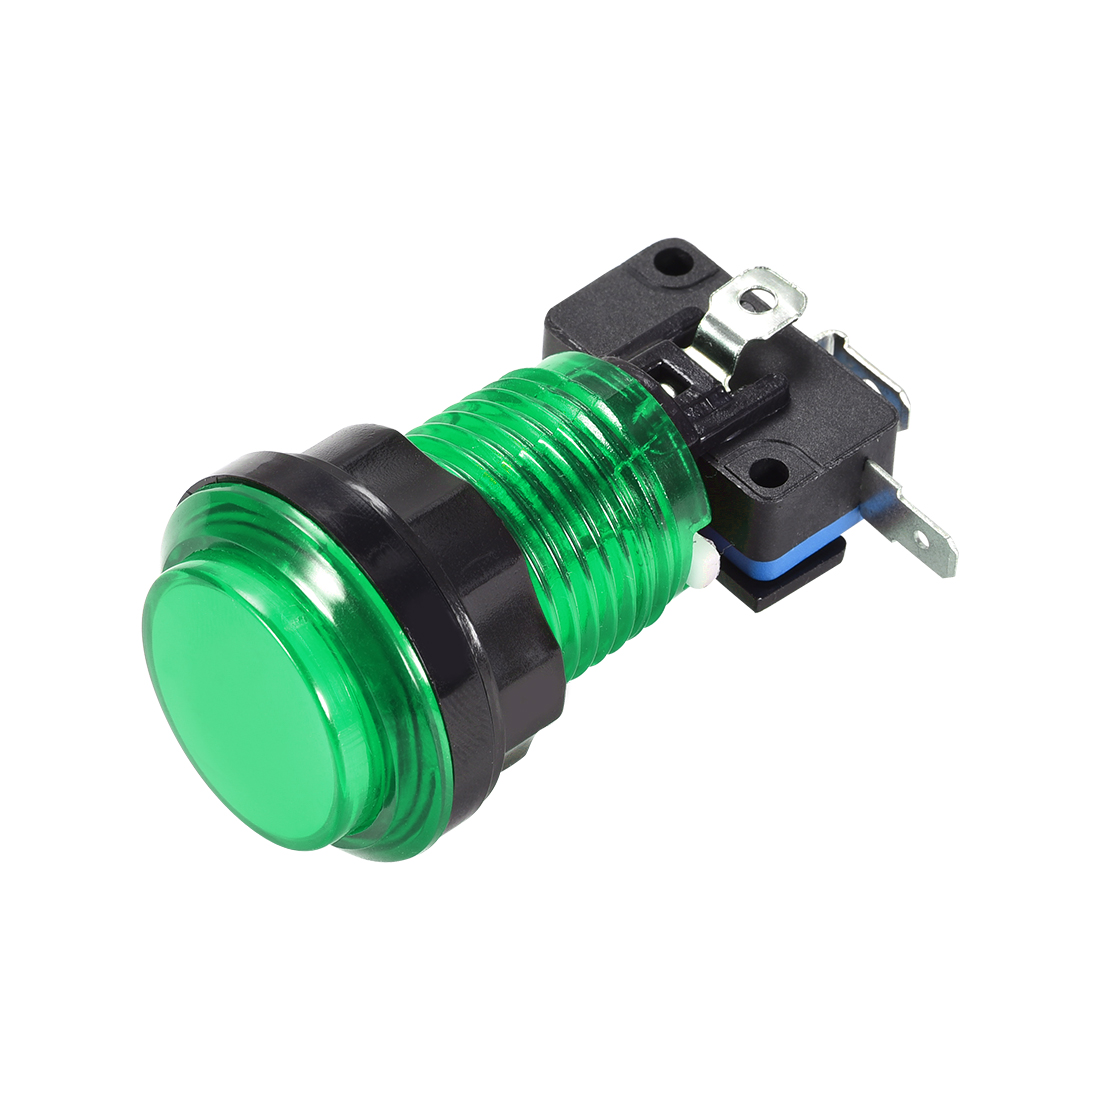 Game Push Button 33.5mm 12V LED Illuminated Switch with Micro switch Green 1pcs